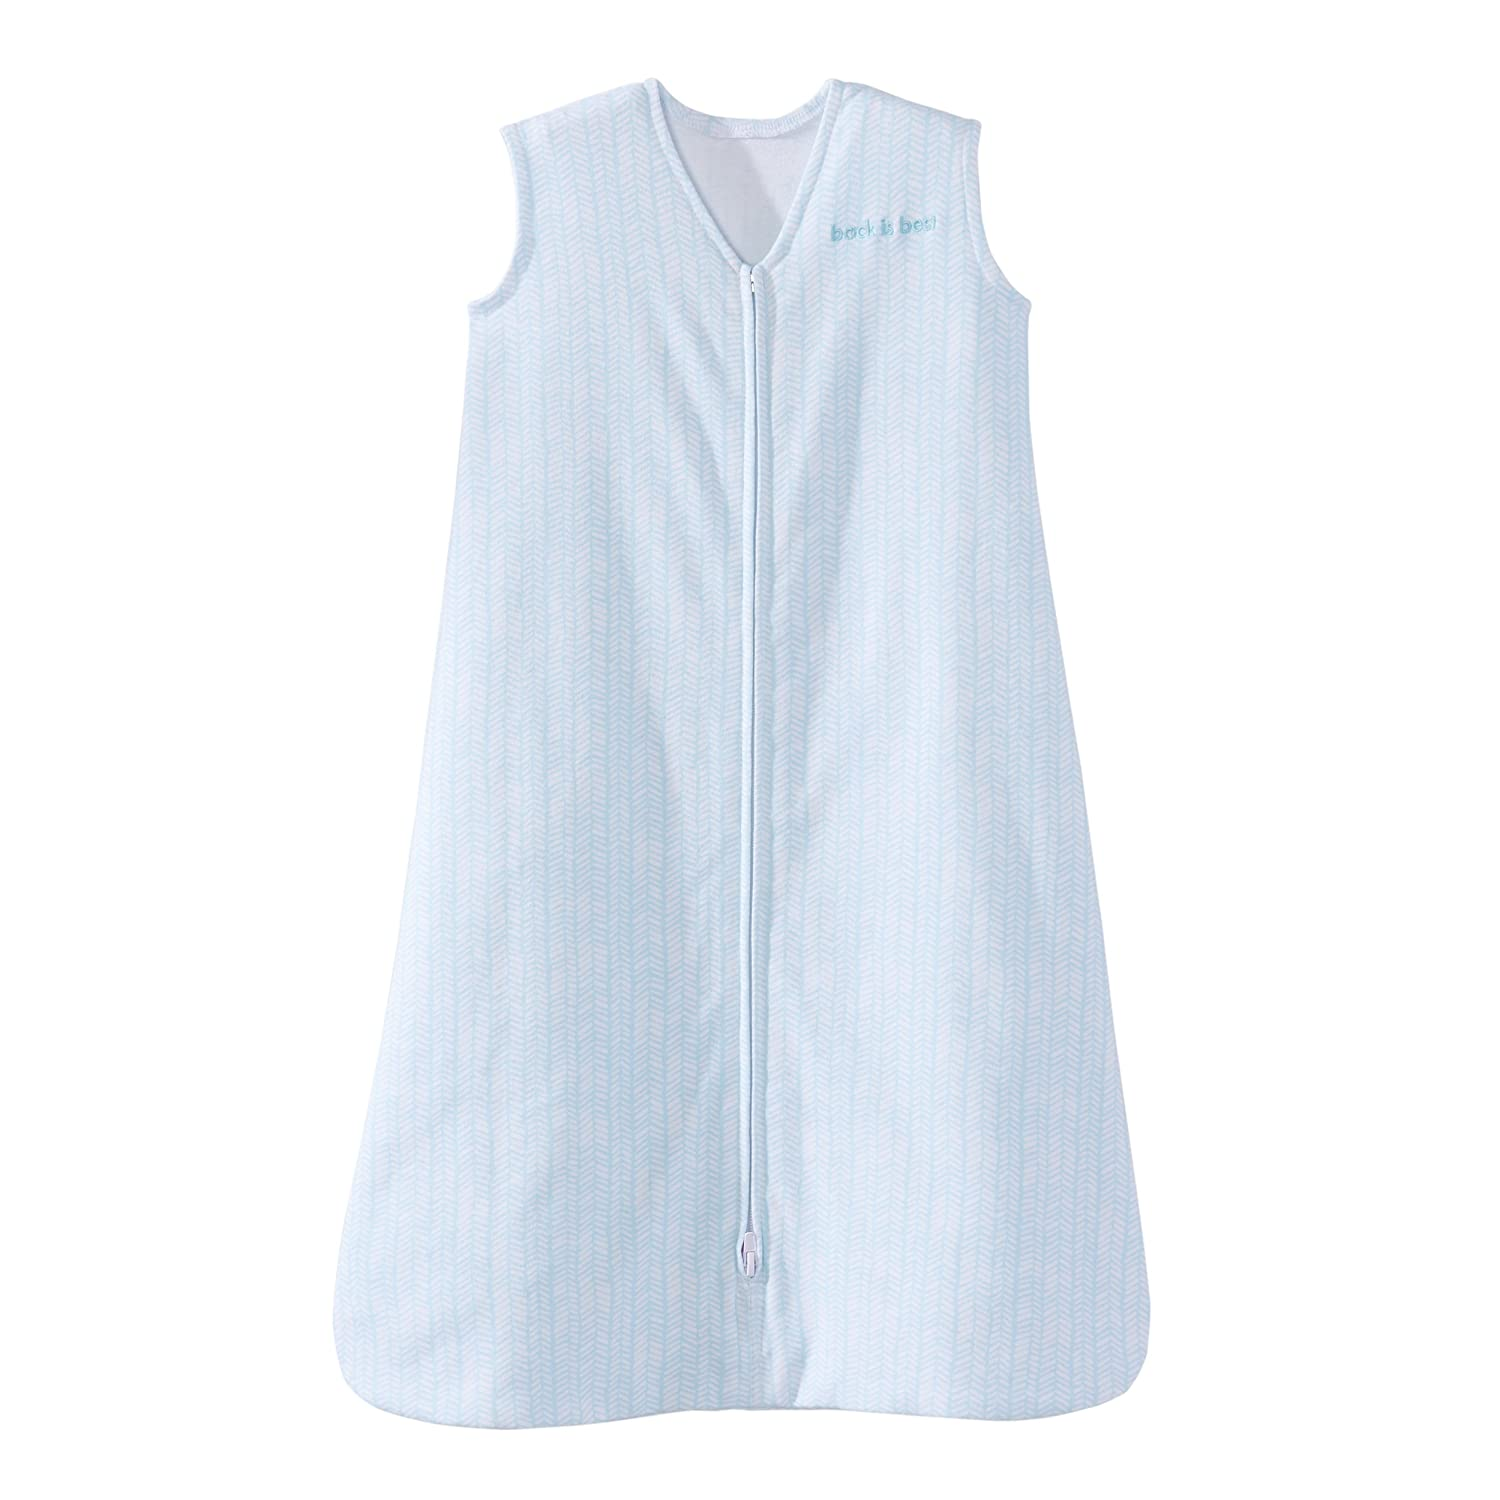 Halo Sleepsack Cotton Wearable Blanket, Aqua Feather, Small